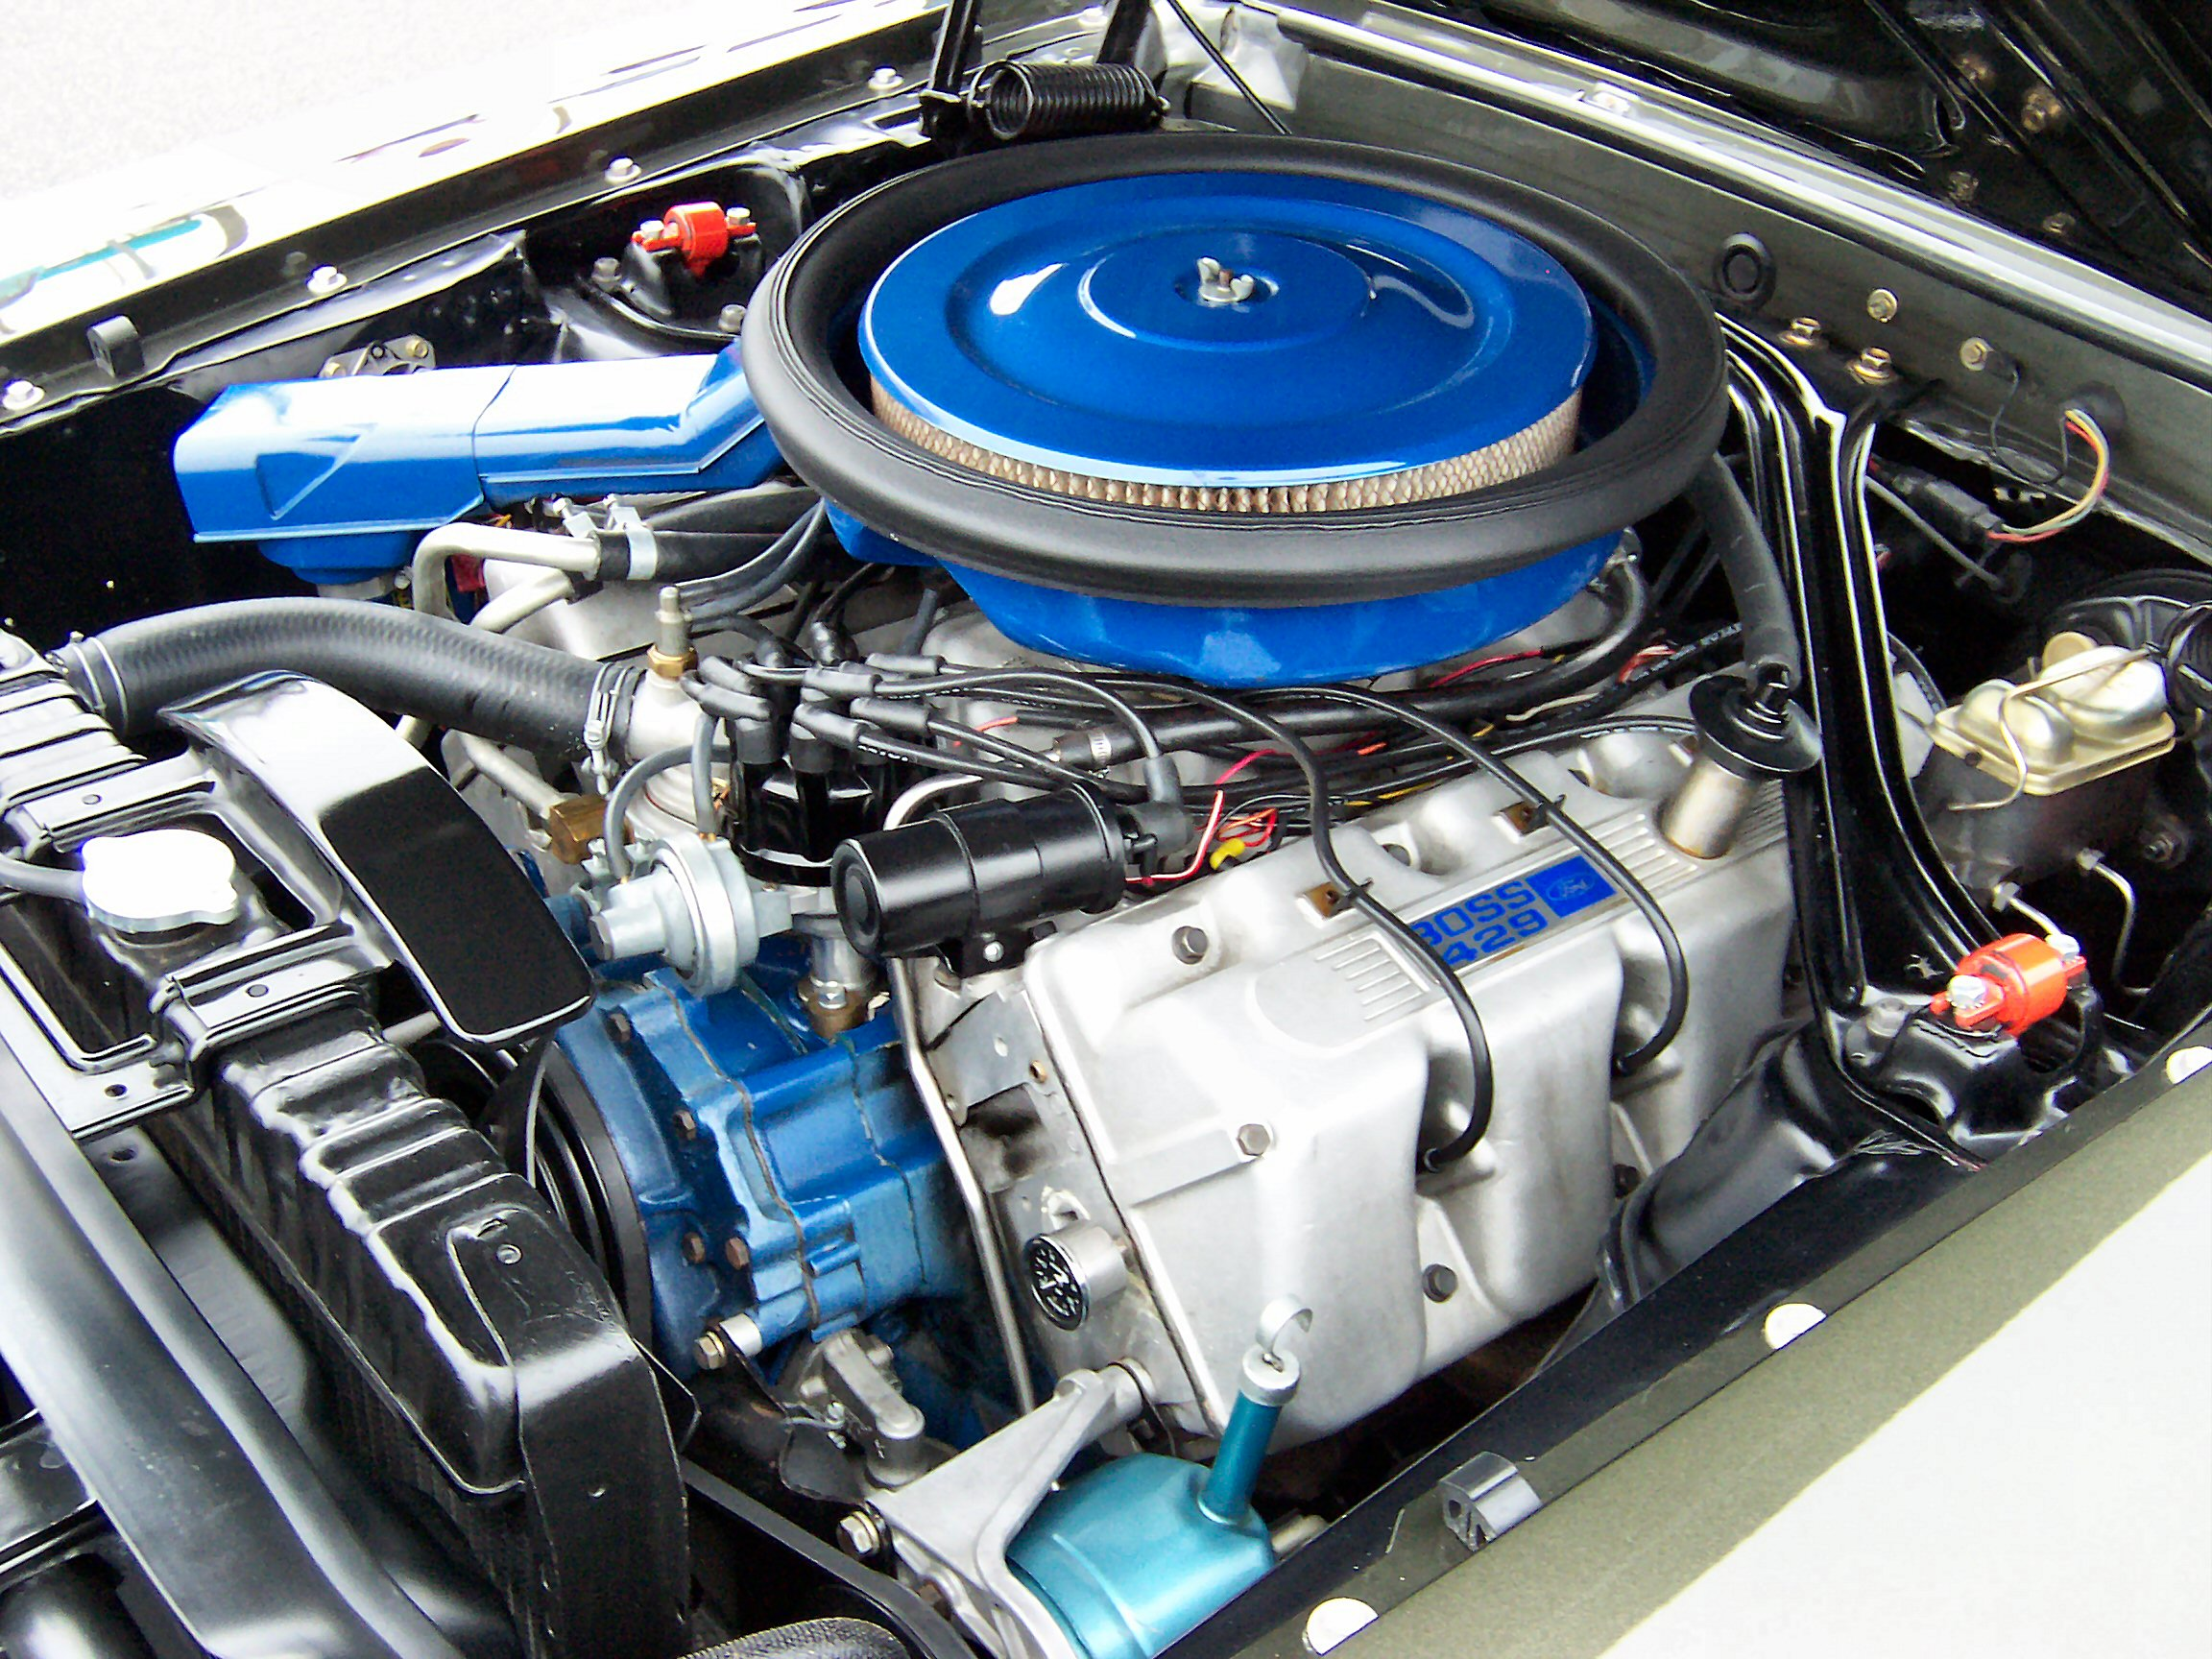 Ford 385 engine - Wikipedia